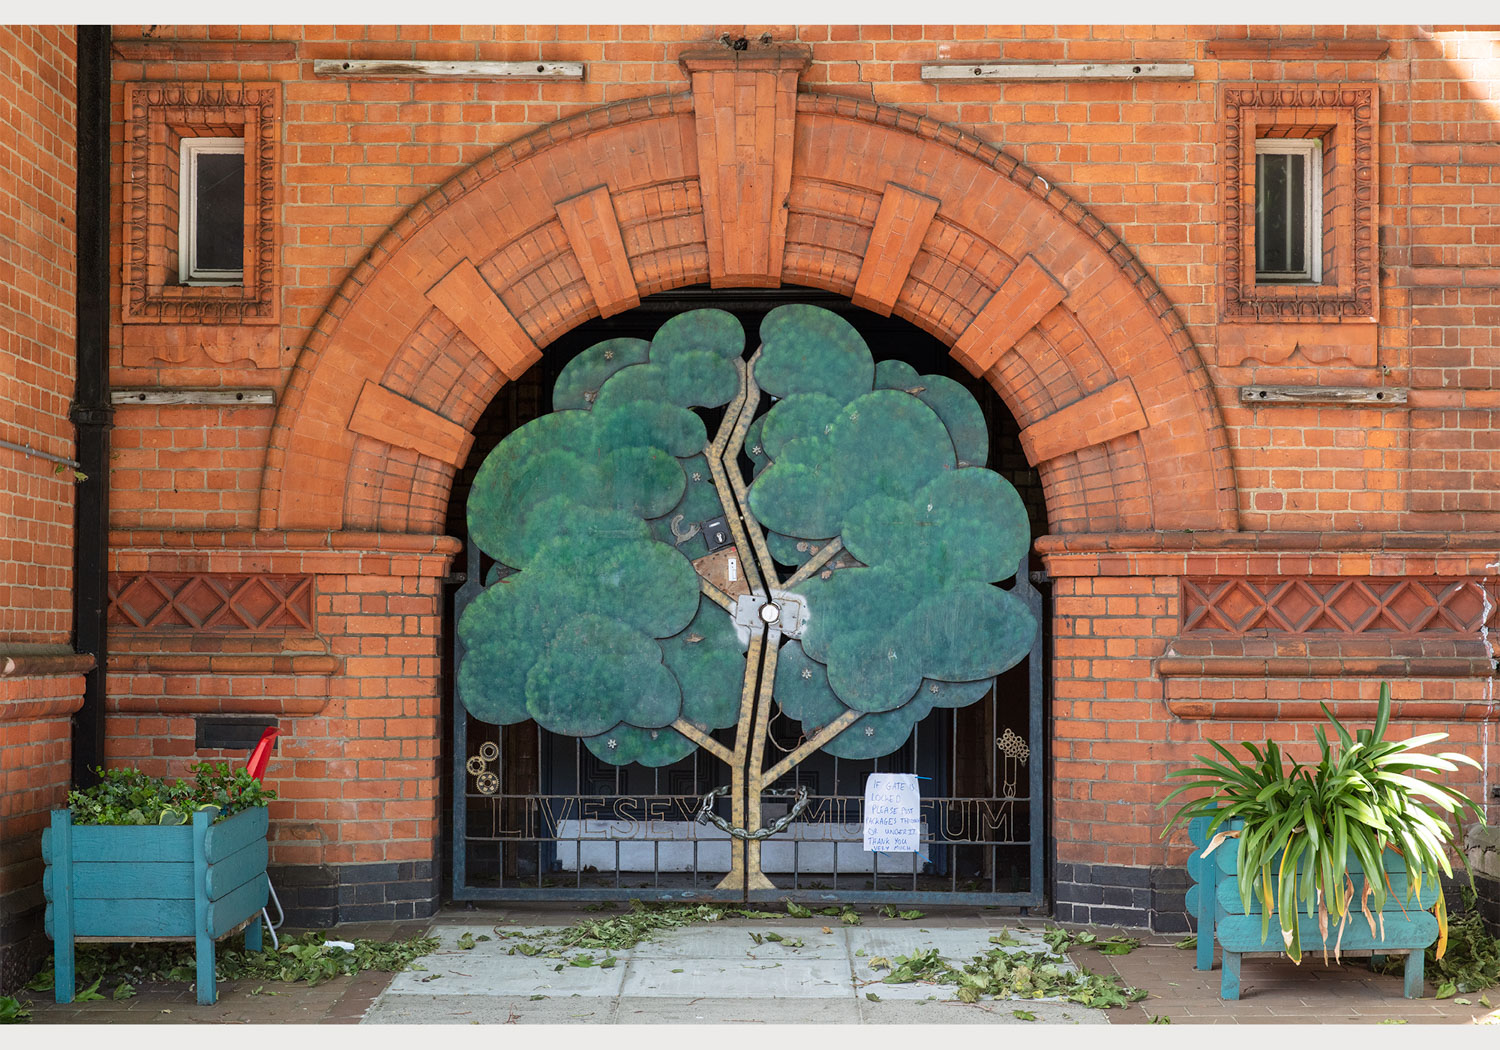 Livesey Libary – Image by Alexander Christie-23